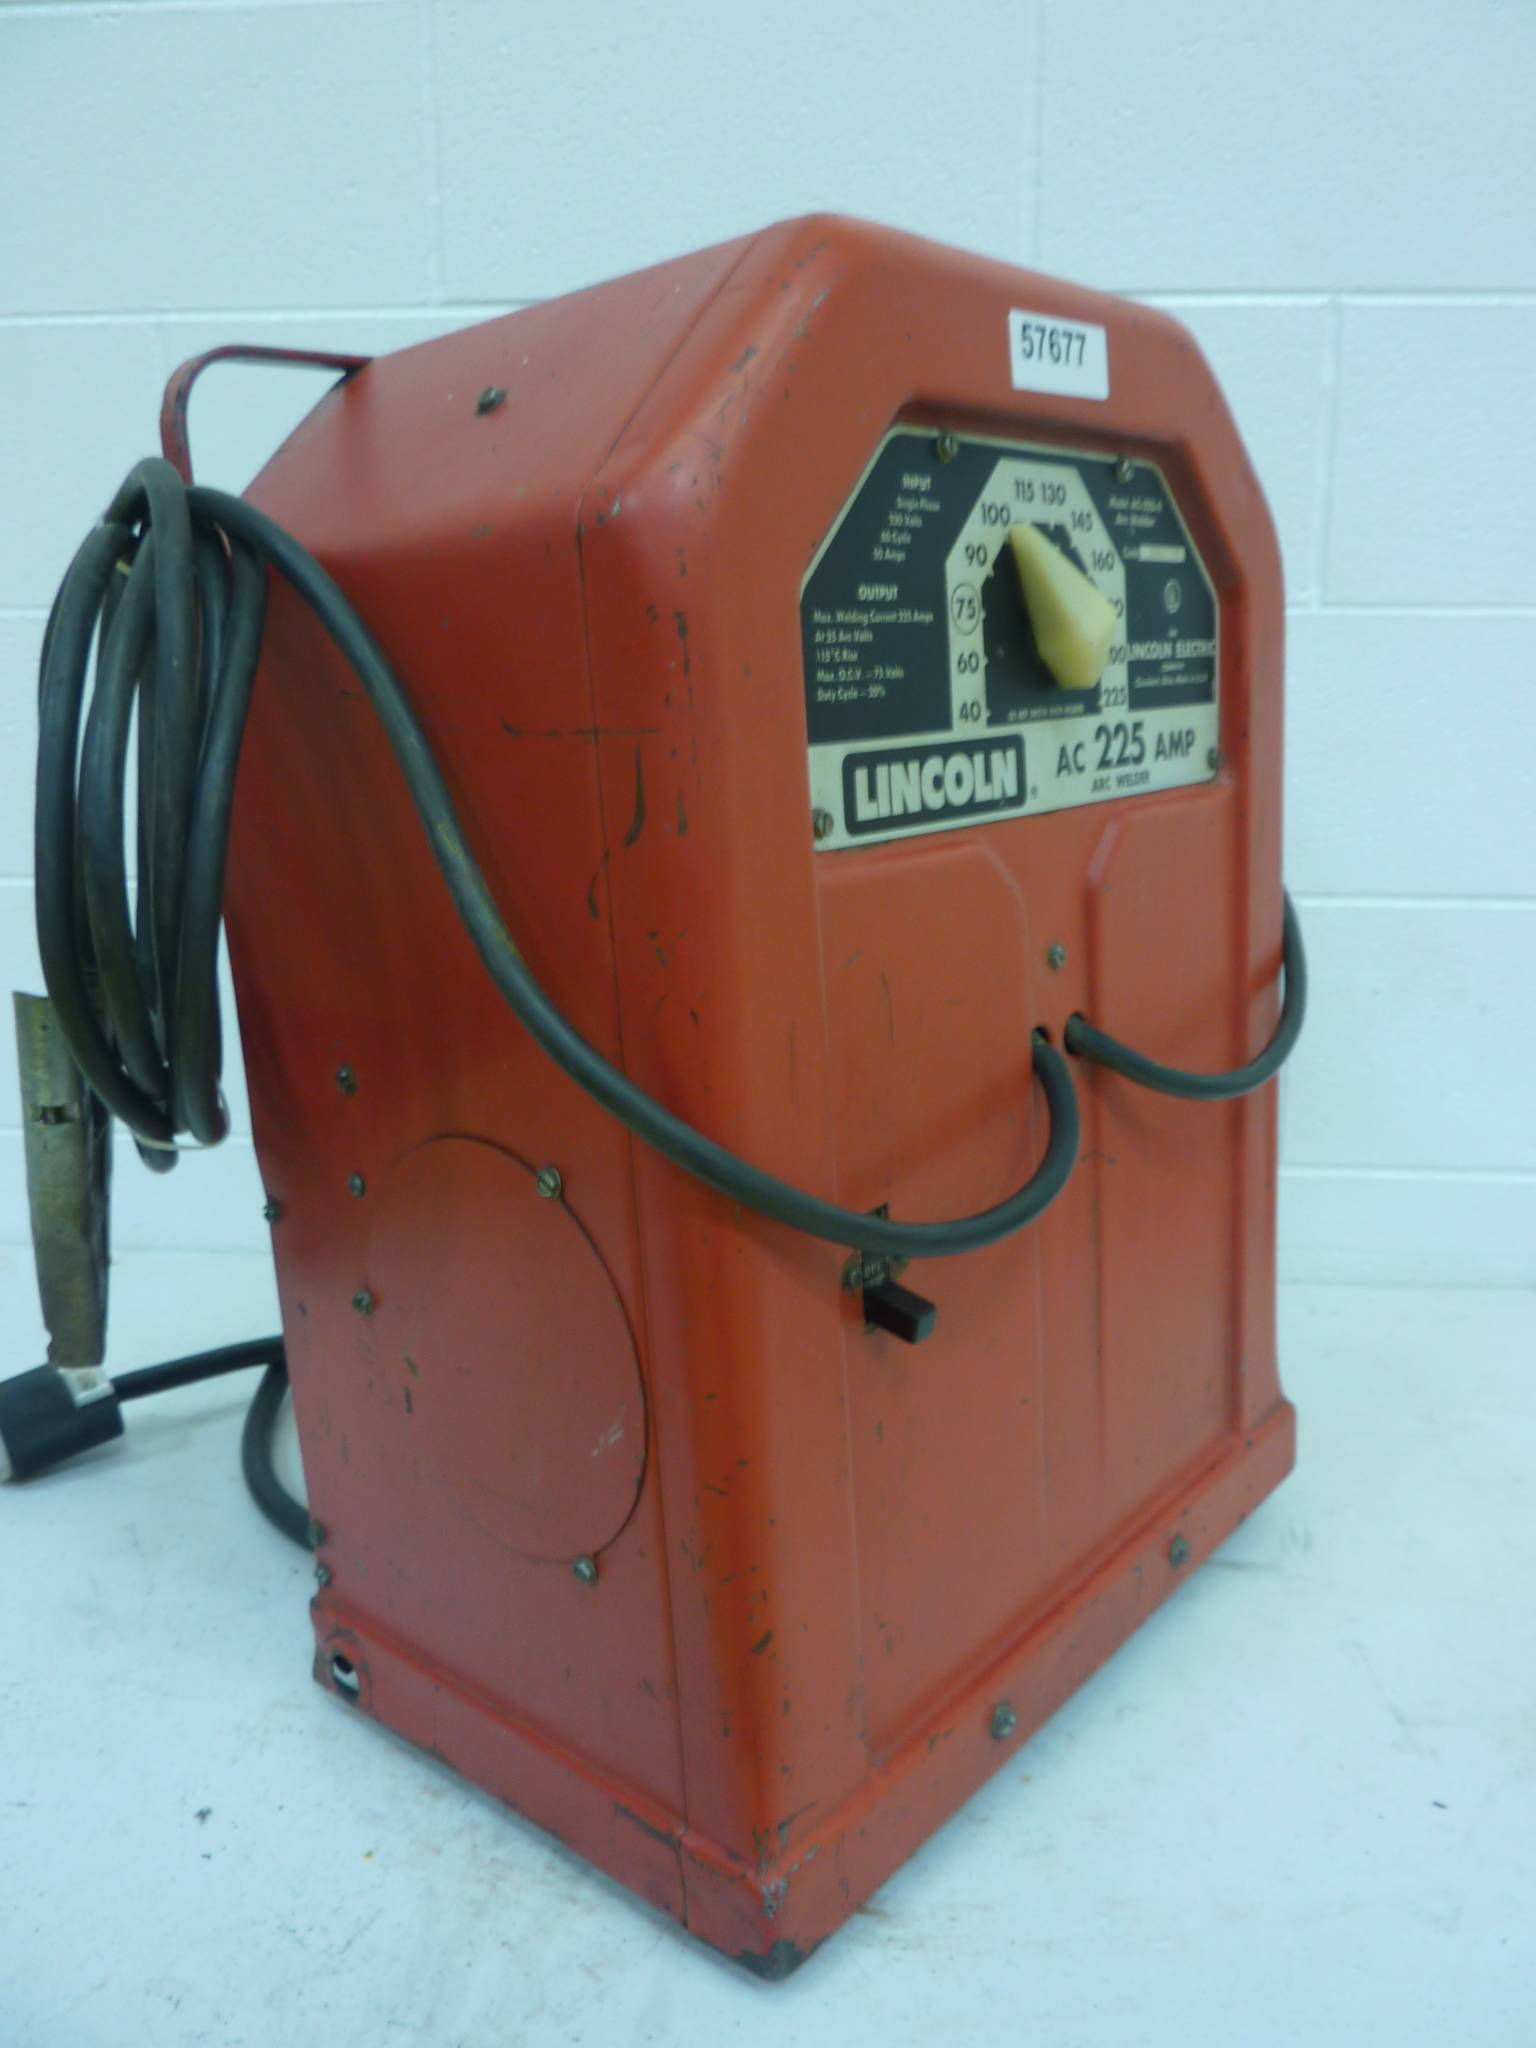 operator's manual register your machine  am working from memory one because  not owners manual  lincoln welder ac  low alloy, ohio lincoln welder ac 225s